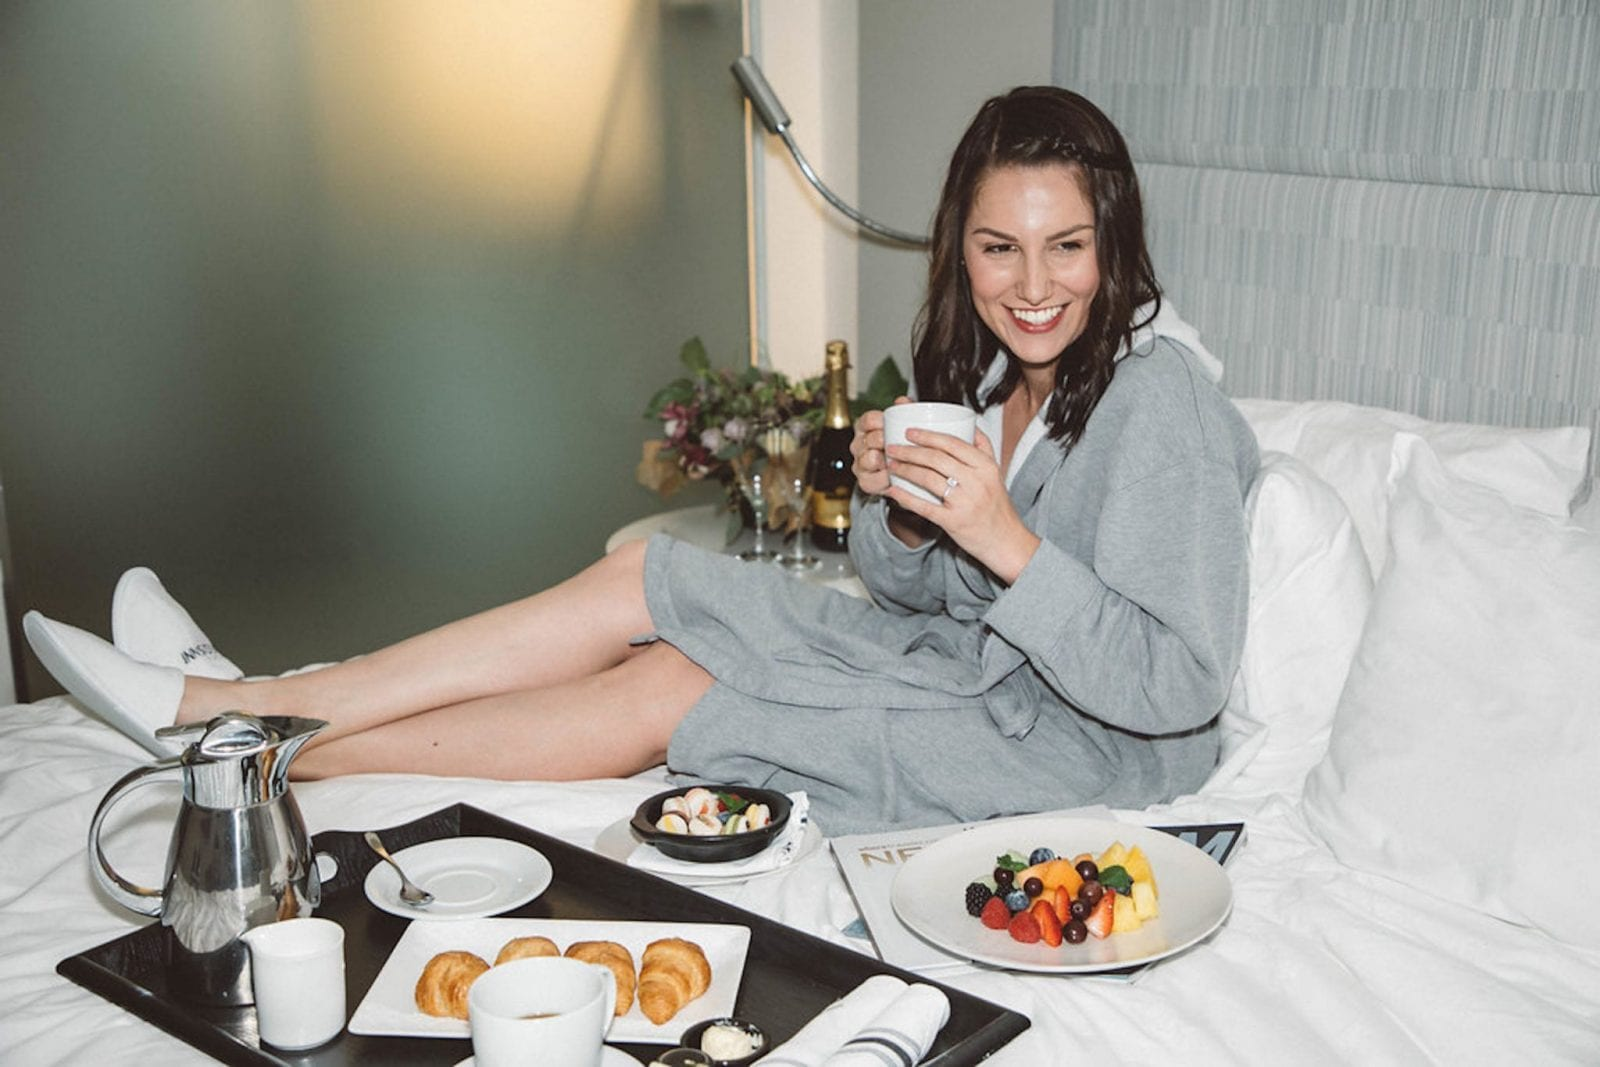 Enjoying Breakfast in Bed and Laughing at The Innside by Melia in New York City.